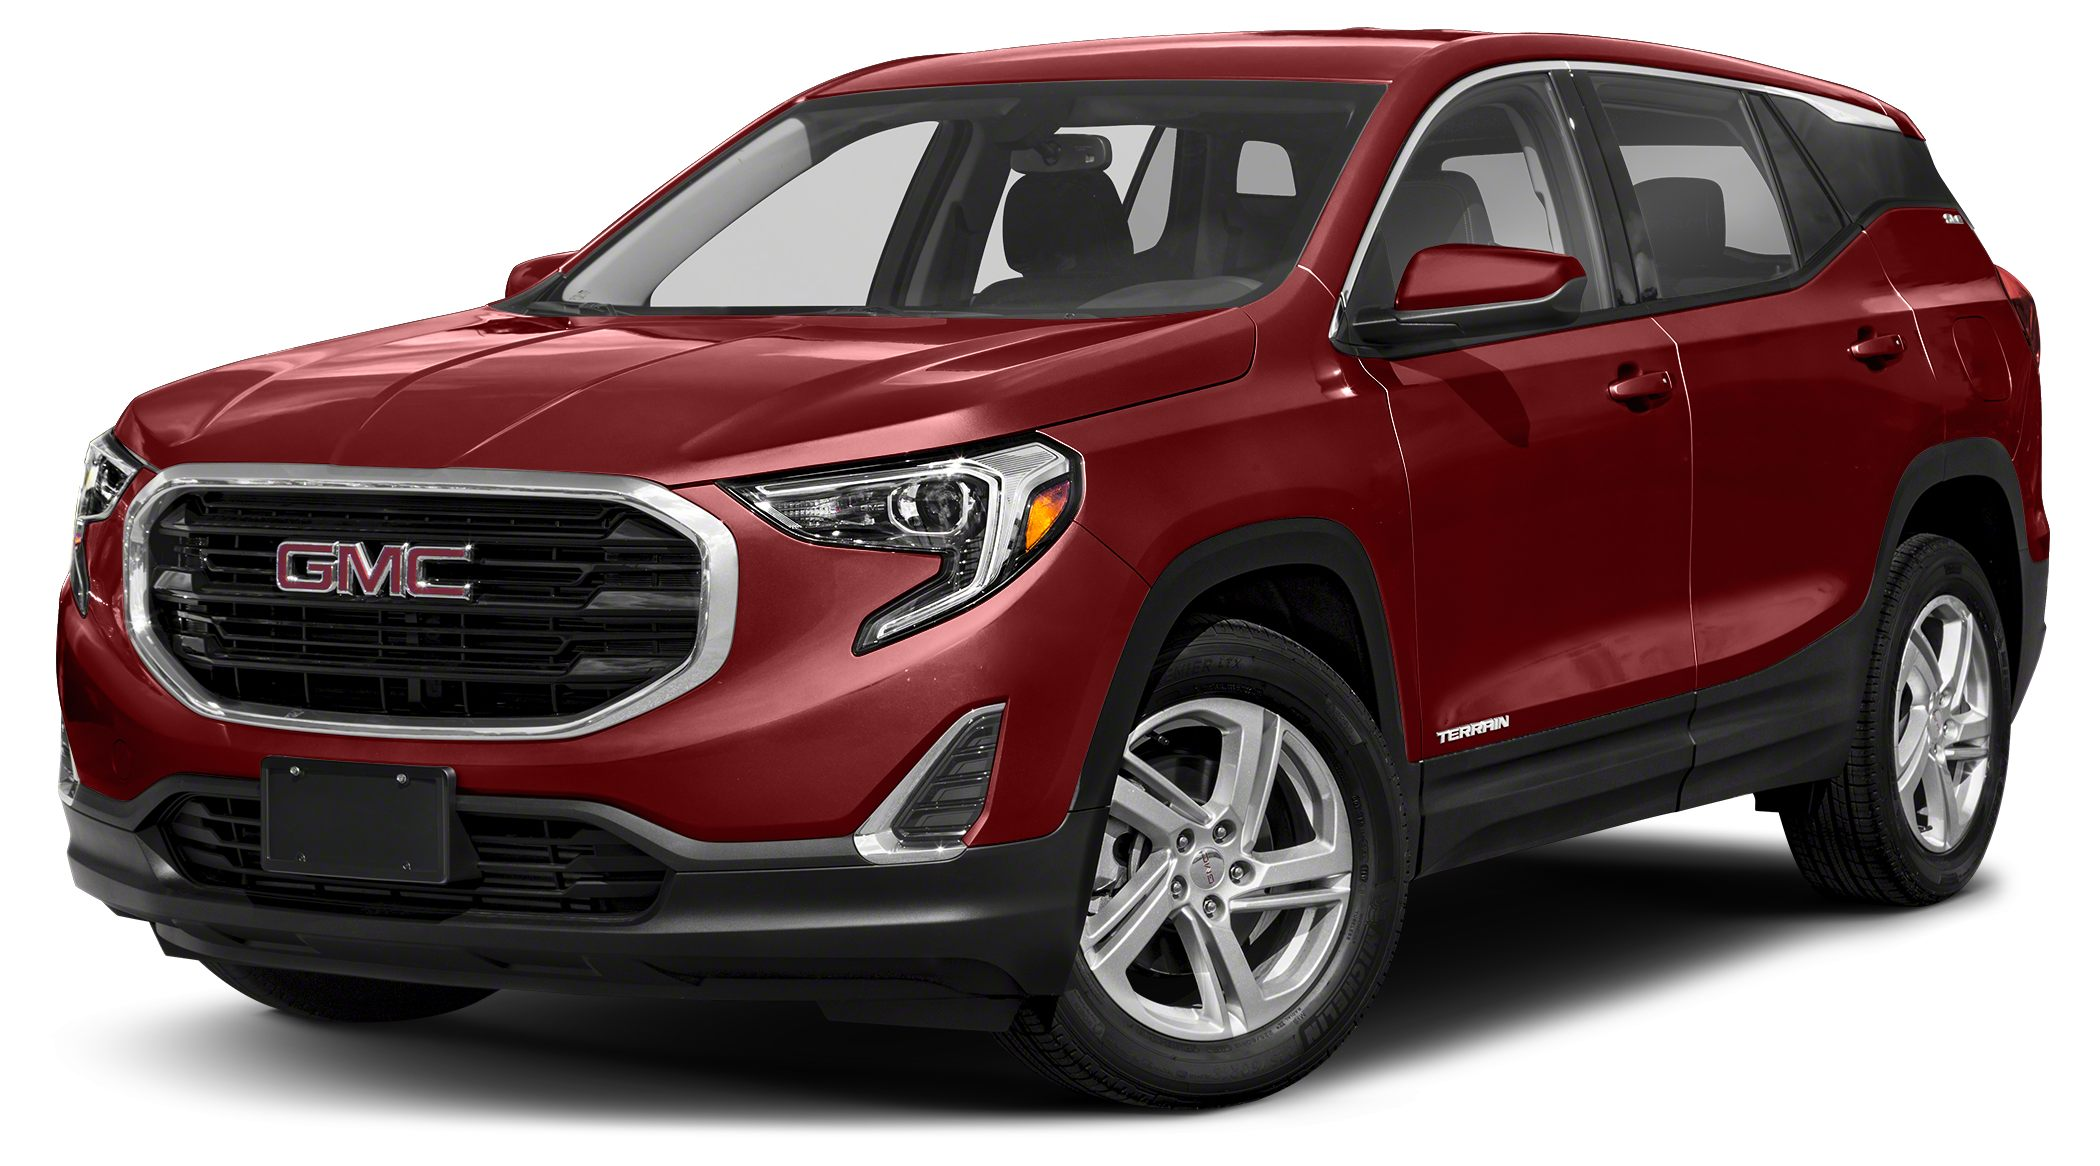 2018 GMC Terrain SLE When youre ready for an automotive upgrade try this 2018 GMC Terrain SLE on